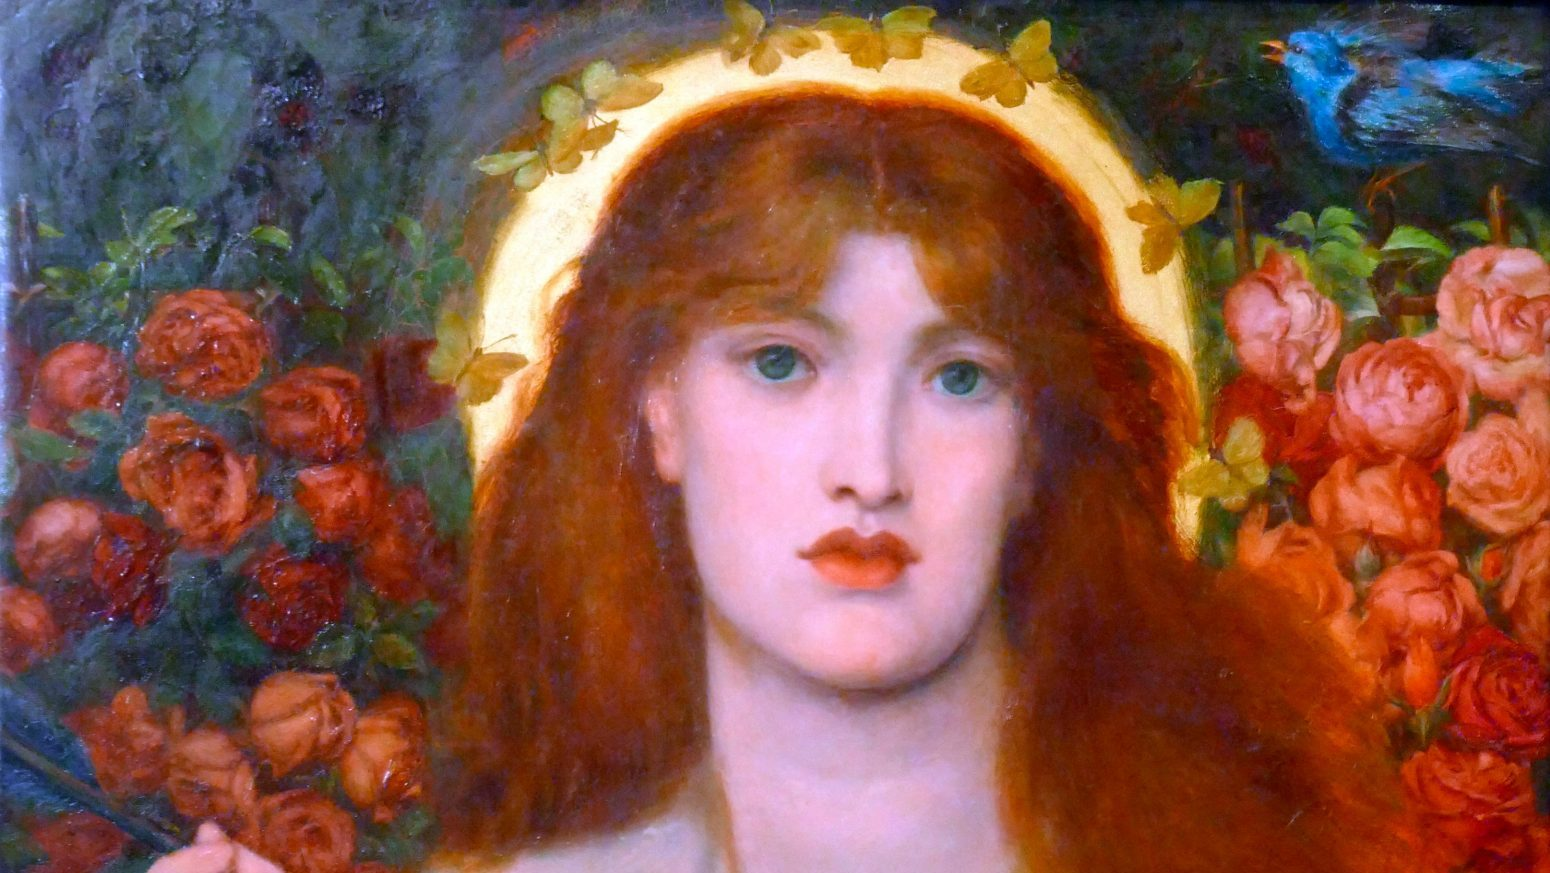 Rosetti's Venus Verticordia (1868). The original model's face was replaced with that of Alexa Wilding. Credit: Universal History/Archive/Universal Images/Group via Getty Images